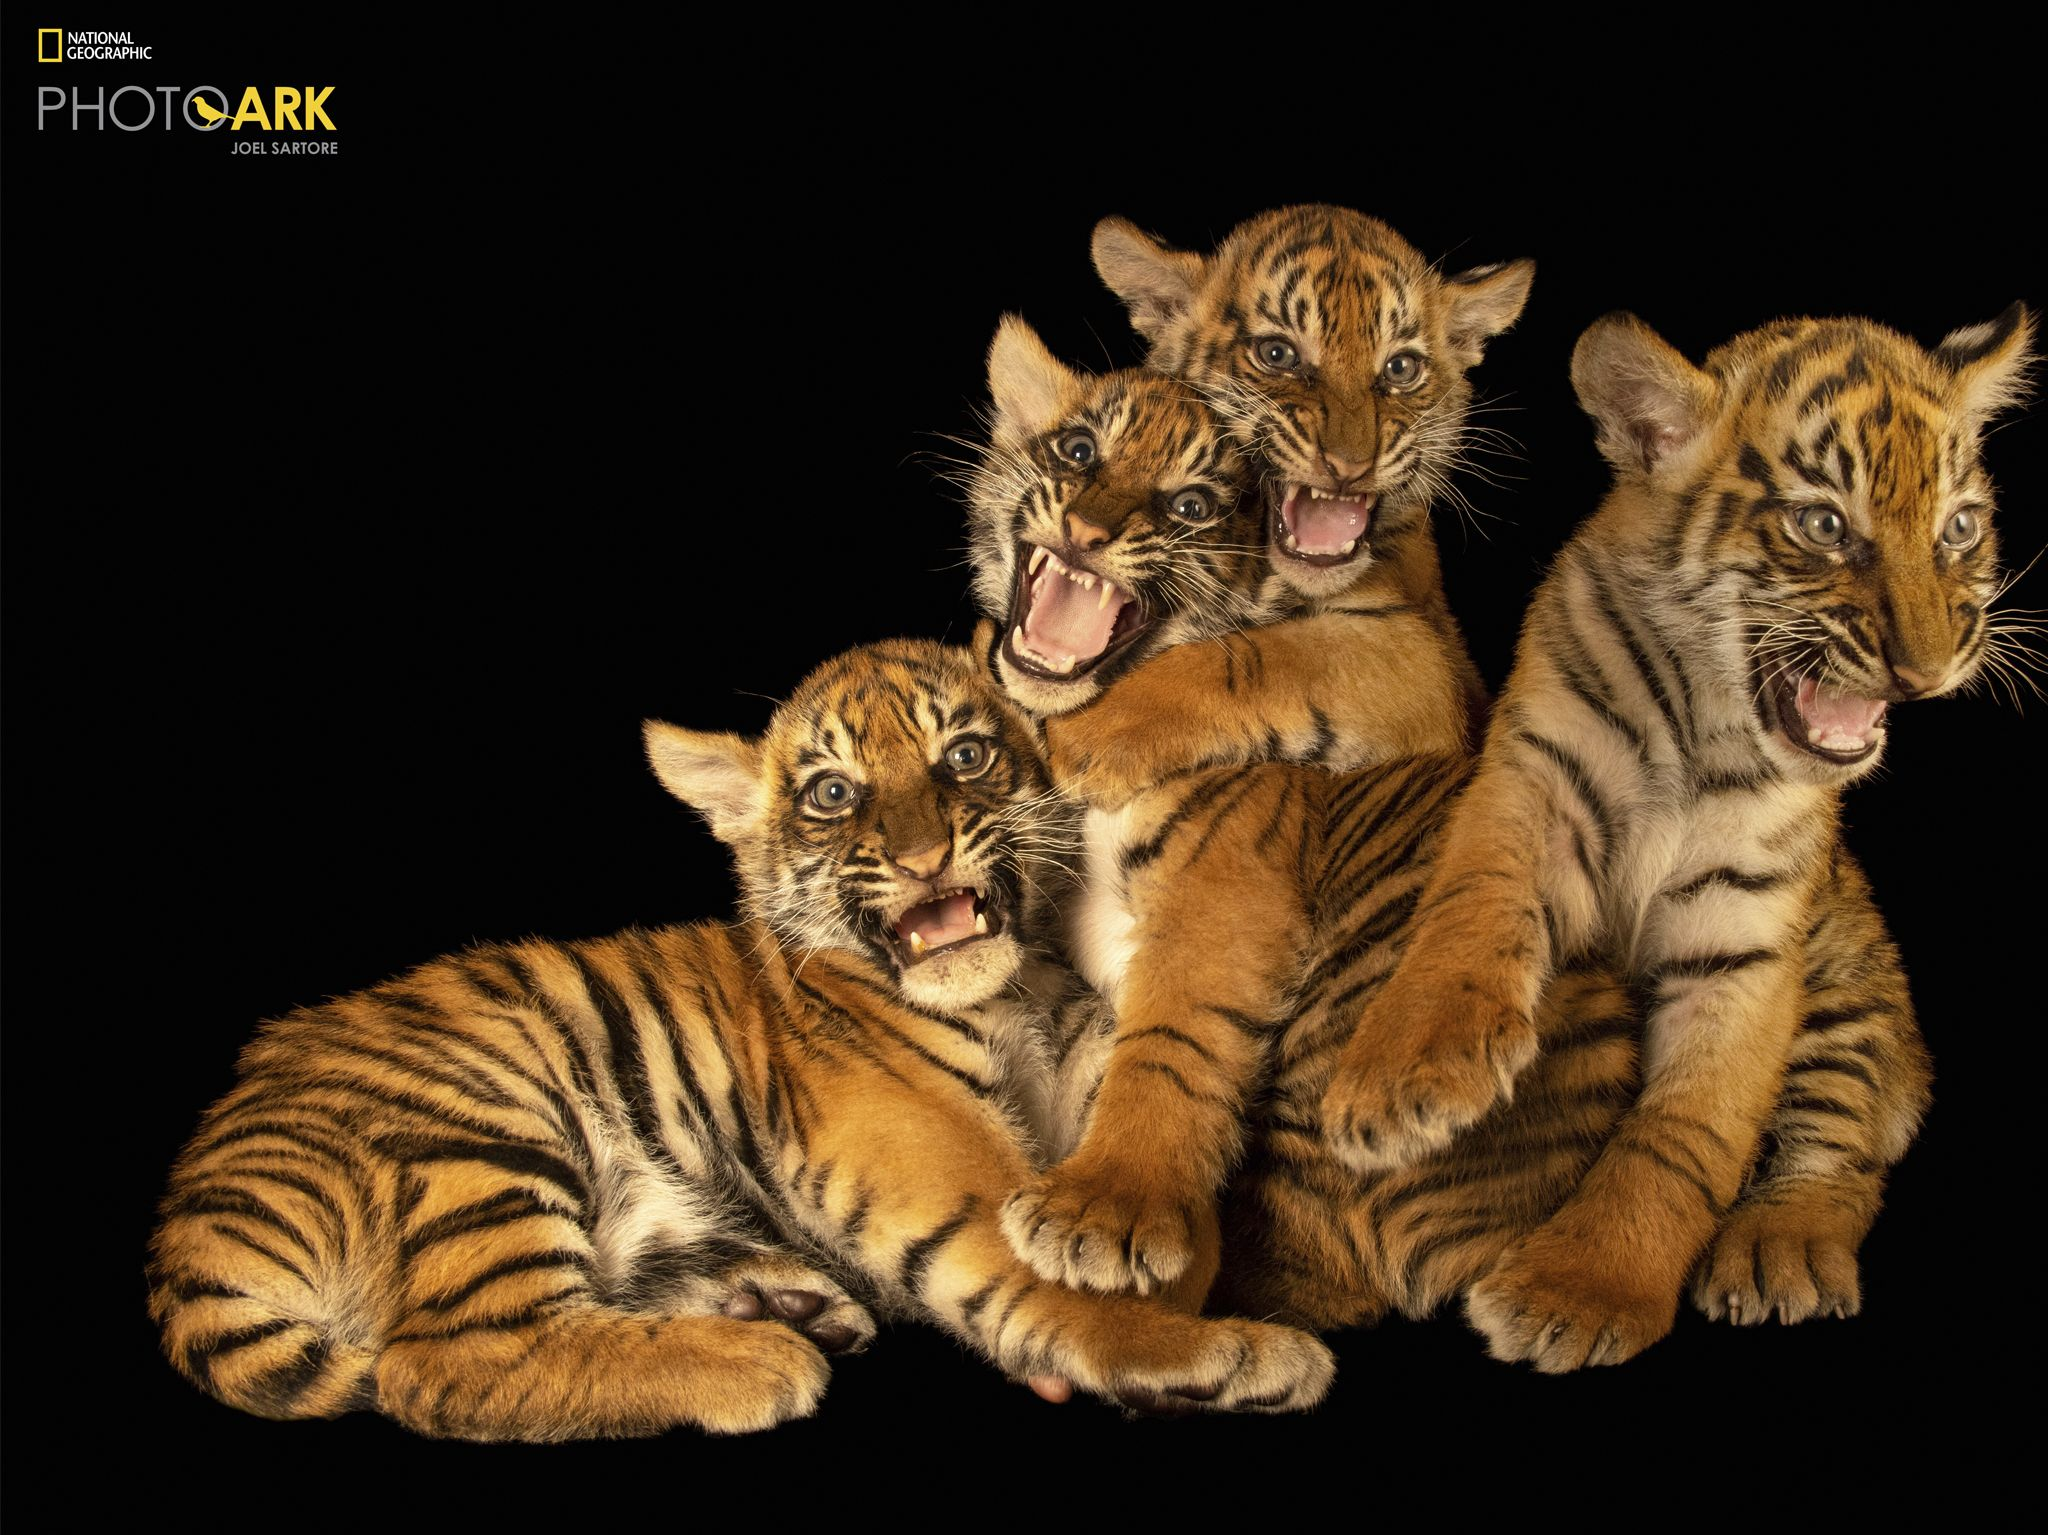 Four Sumatran tiger cubs, Panthera tigris sumatrae, at the Tierpark Berlin. This image is from... [Photo of the day - November 2020]